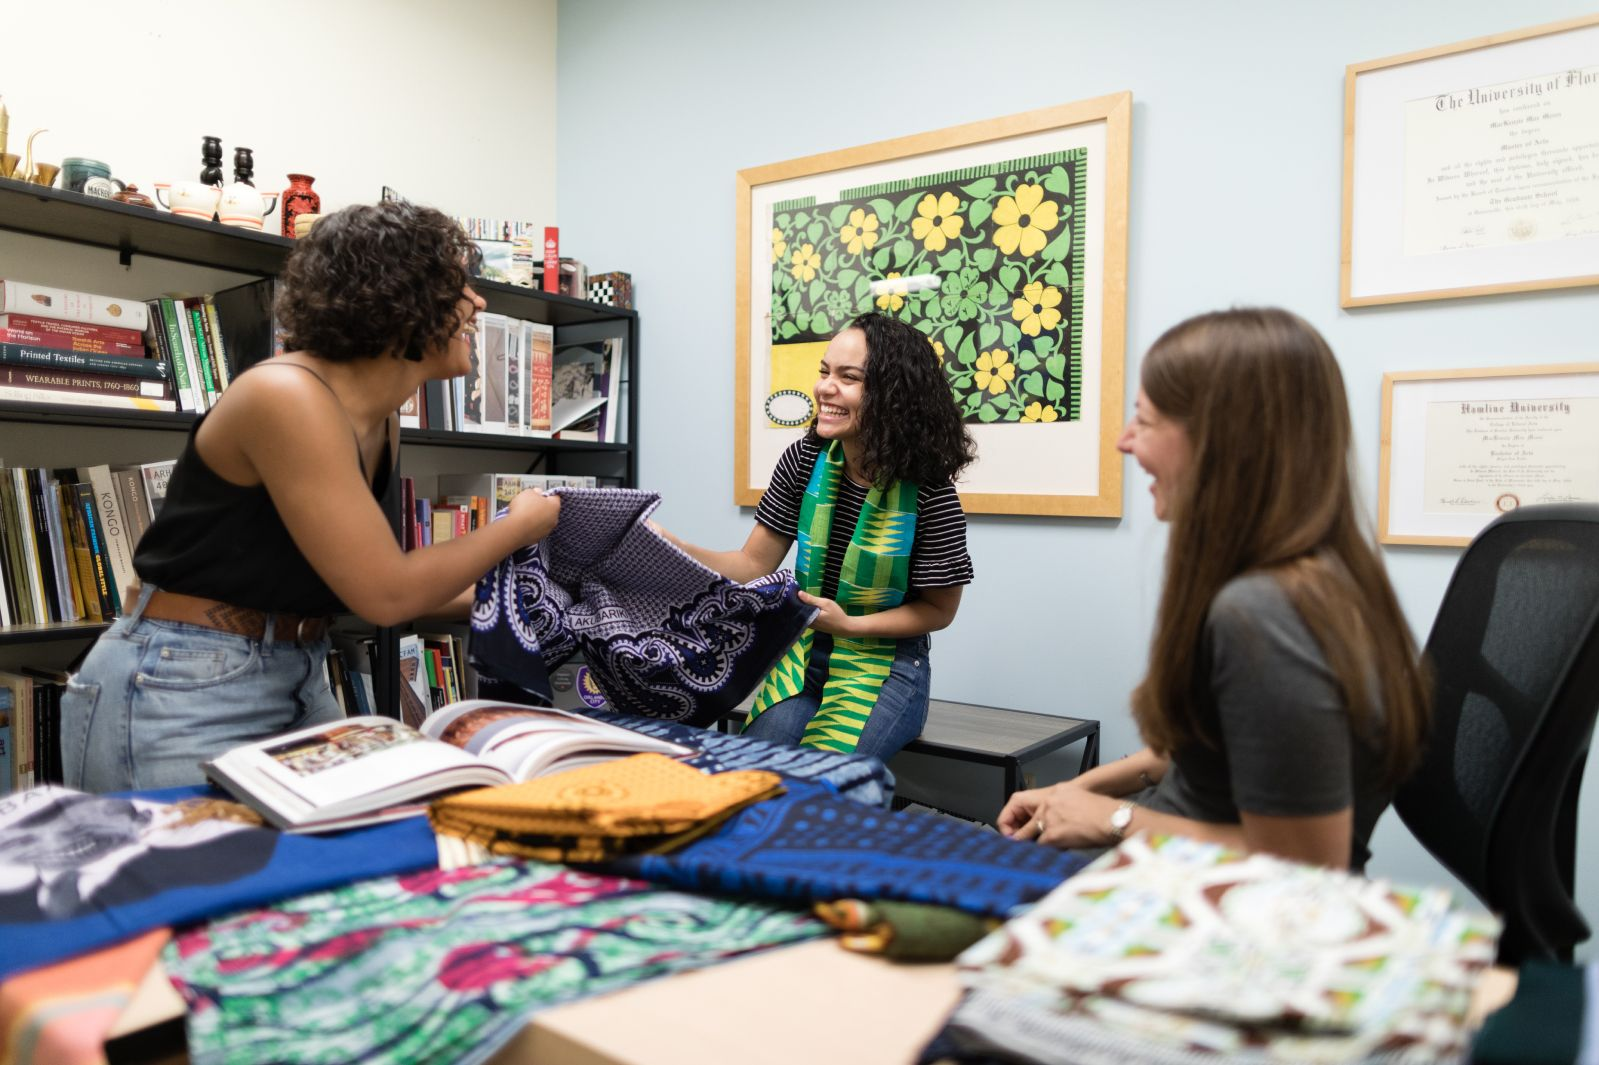 Students collaborate on textile research in the Cornell Fine Arts Museum.